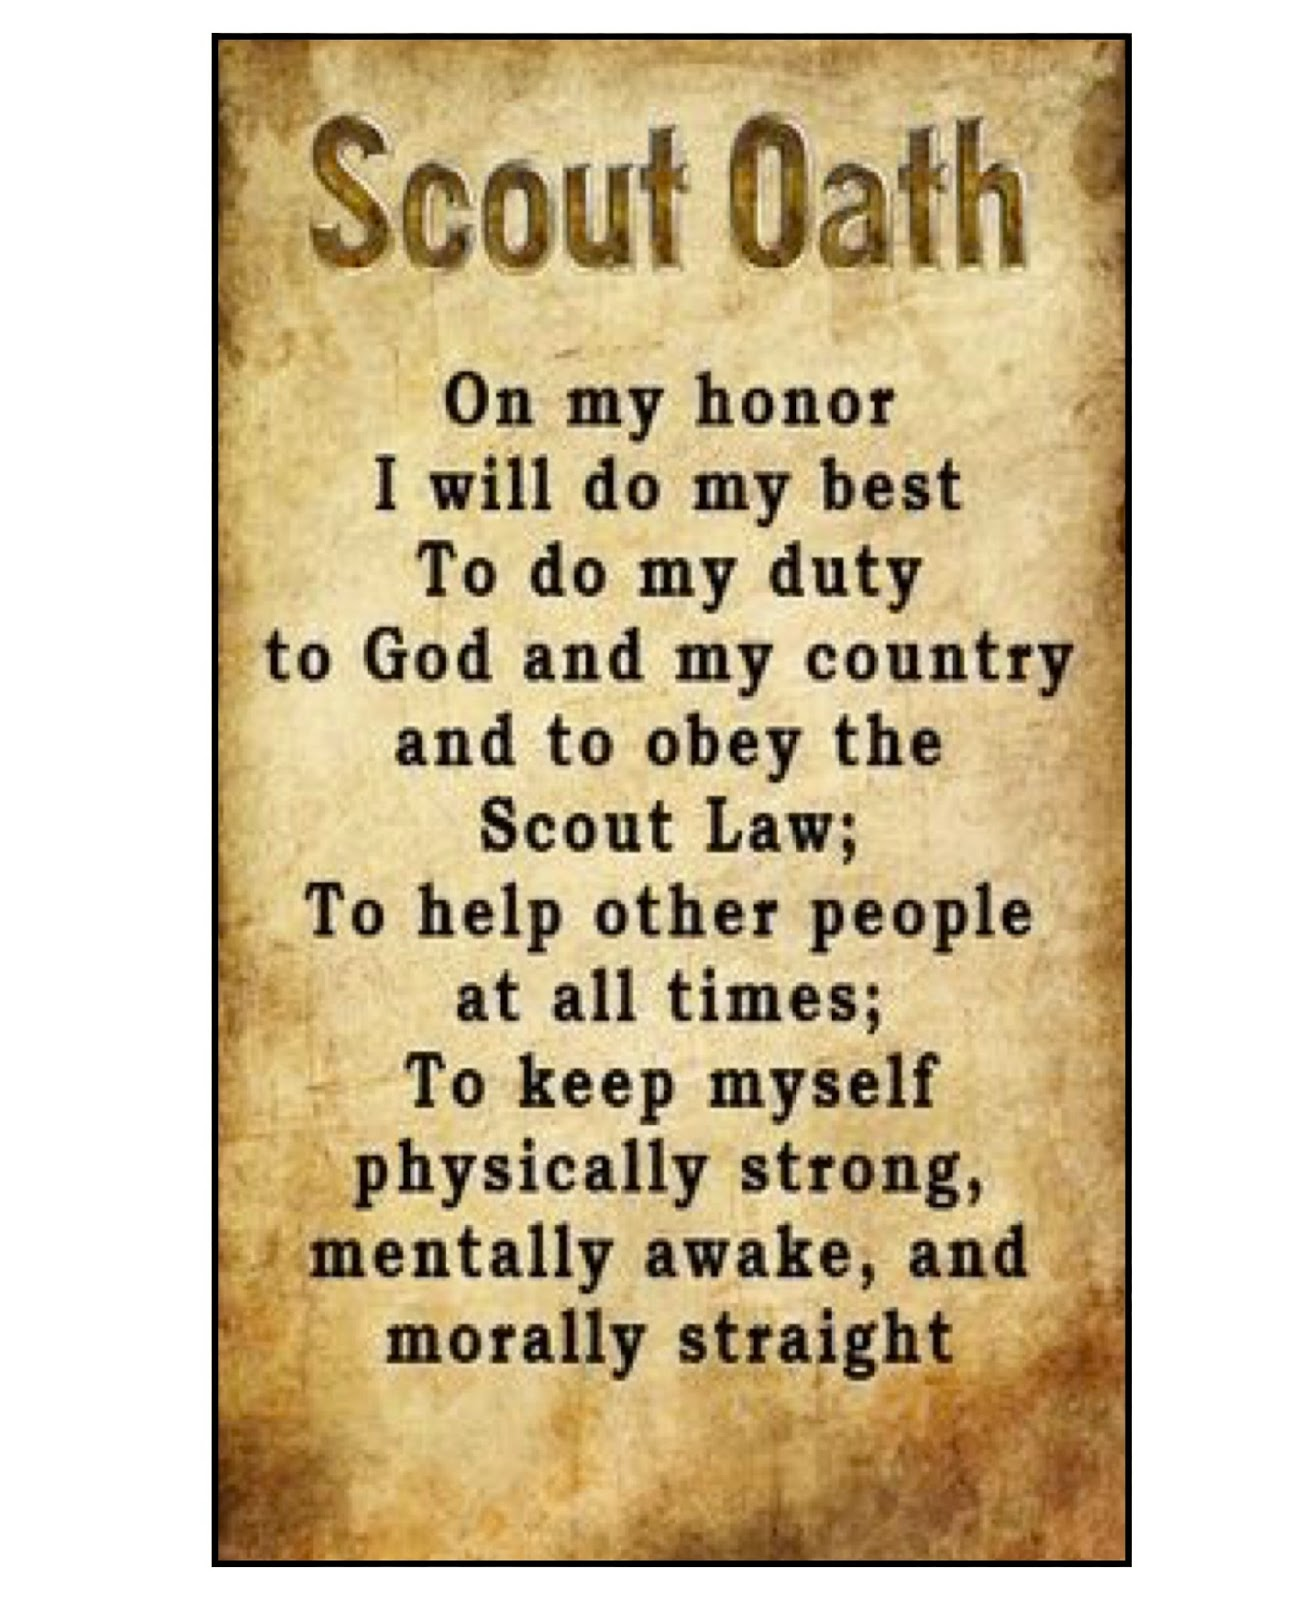 photograph about Scout Oath Printable referred to as Akelas Council Cub Scout Chief Performing exercises: Cub Scout Craft